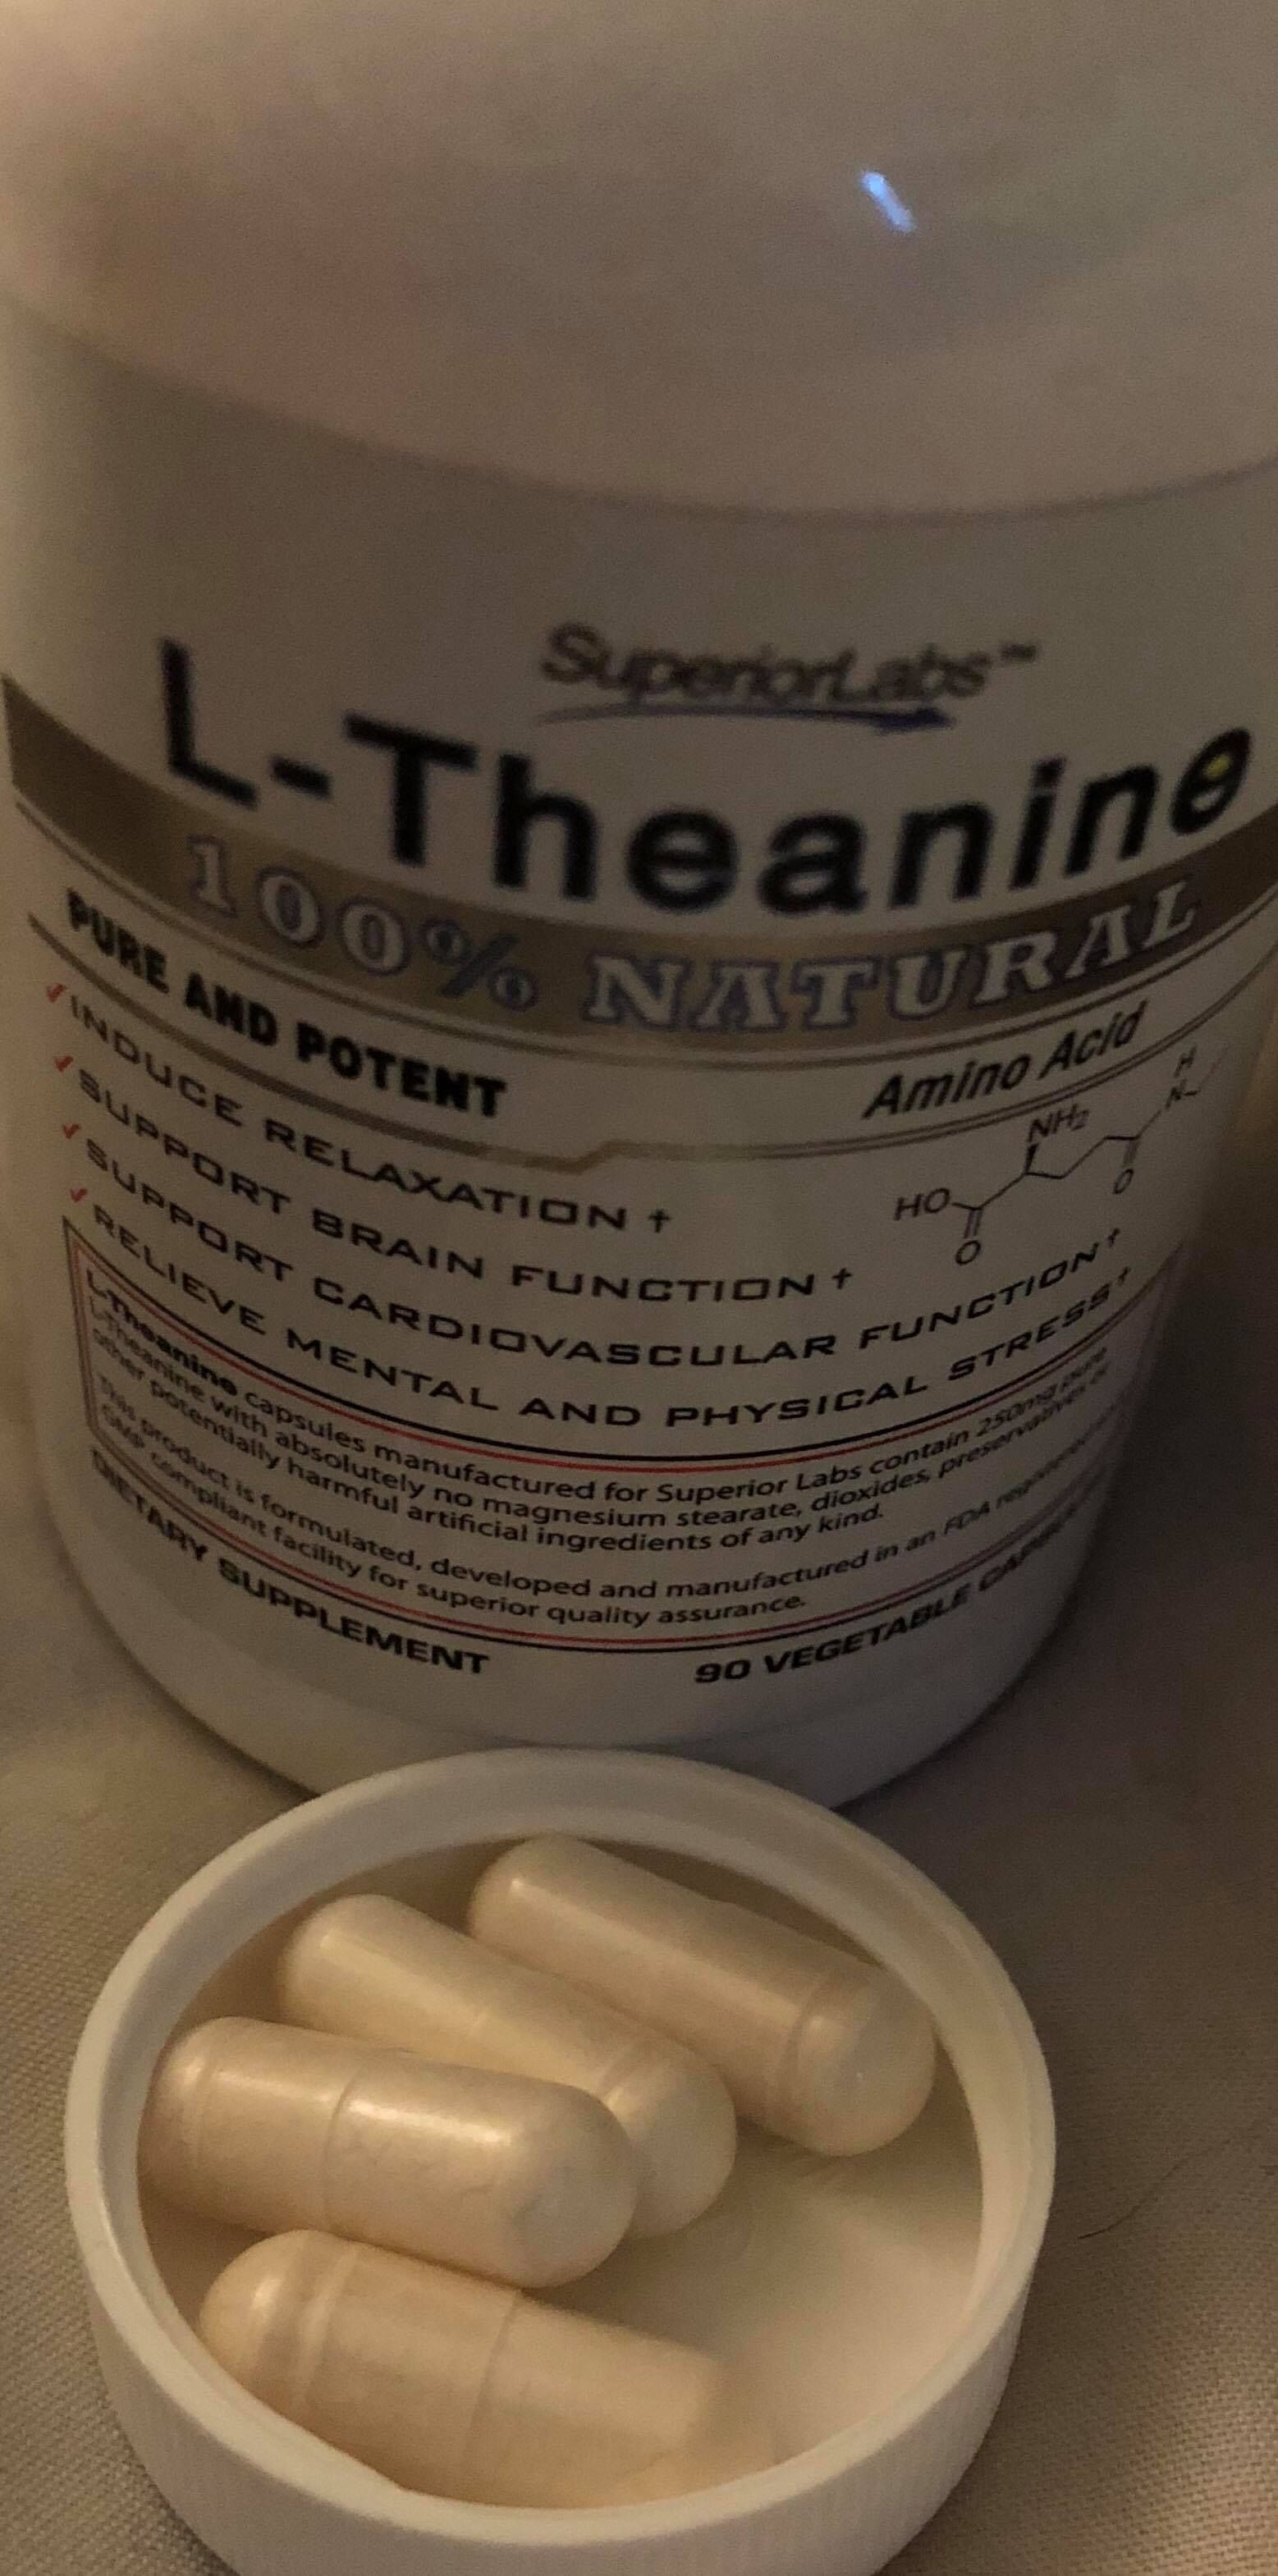 Ltheanine theanine improve brain function how to get